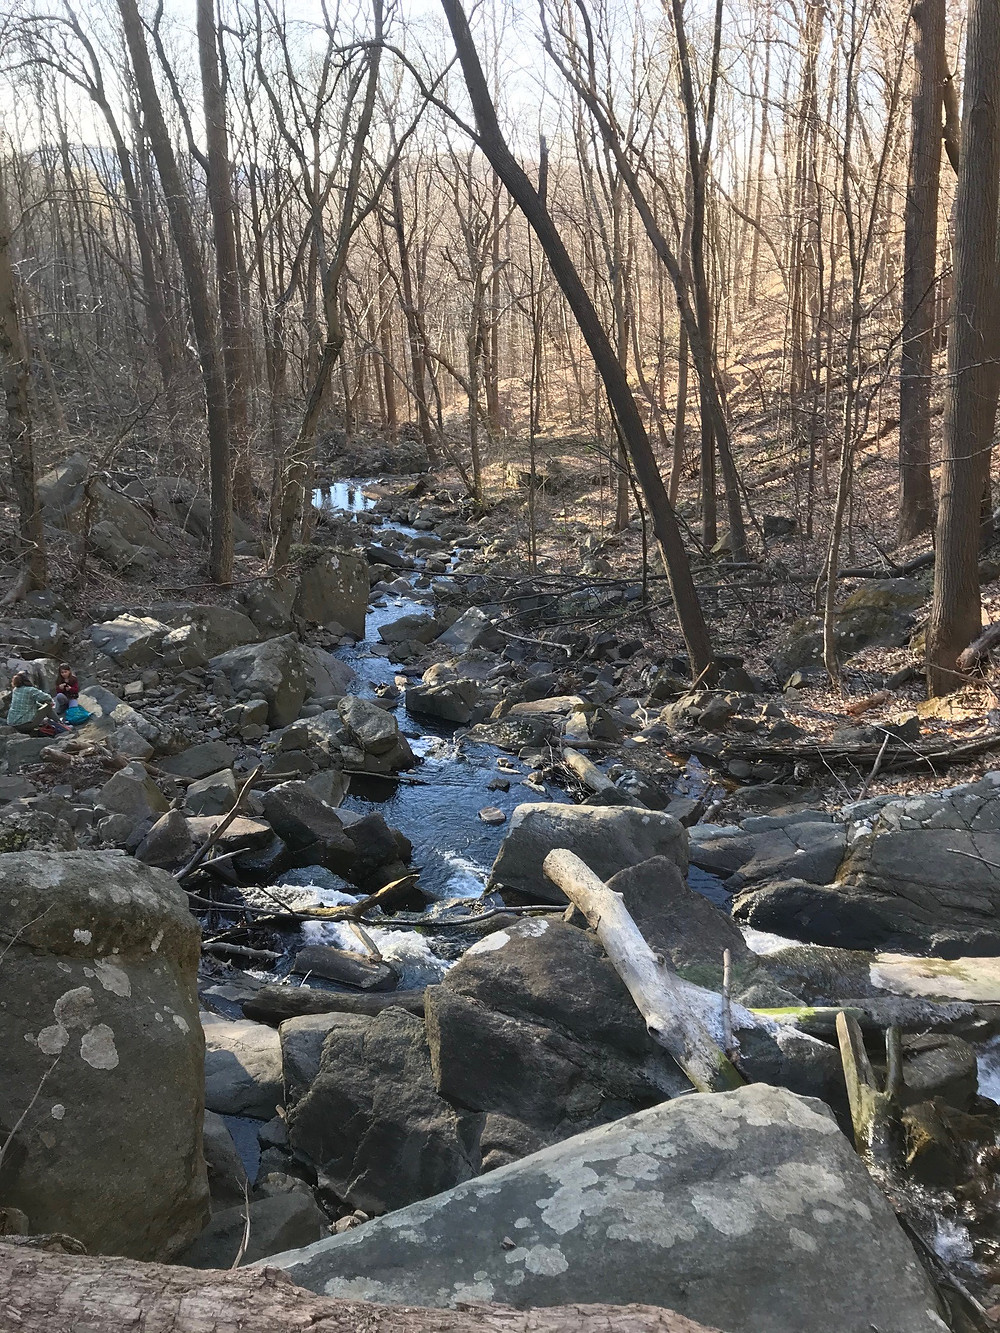 Scout Run, a trout-producing tributary to the Musconetcong River in Holland Township, Hunterdon County, had its water quality standards raised to protect its fish habitat as part of a recent NJDEP rule.